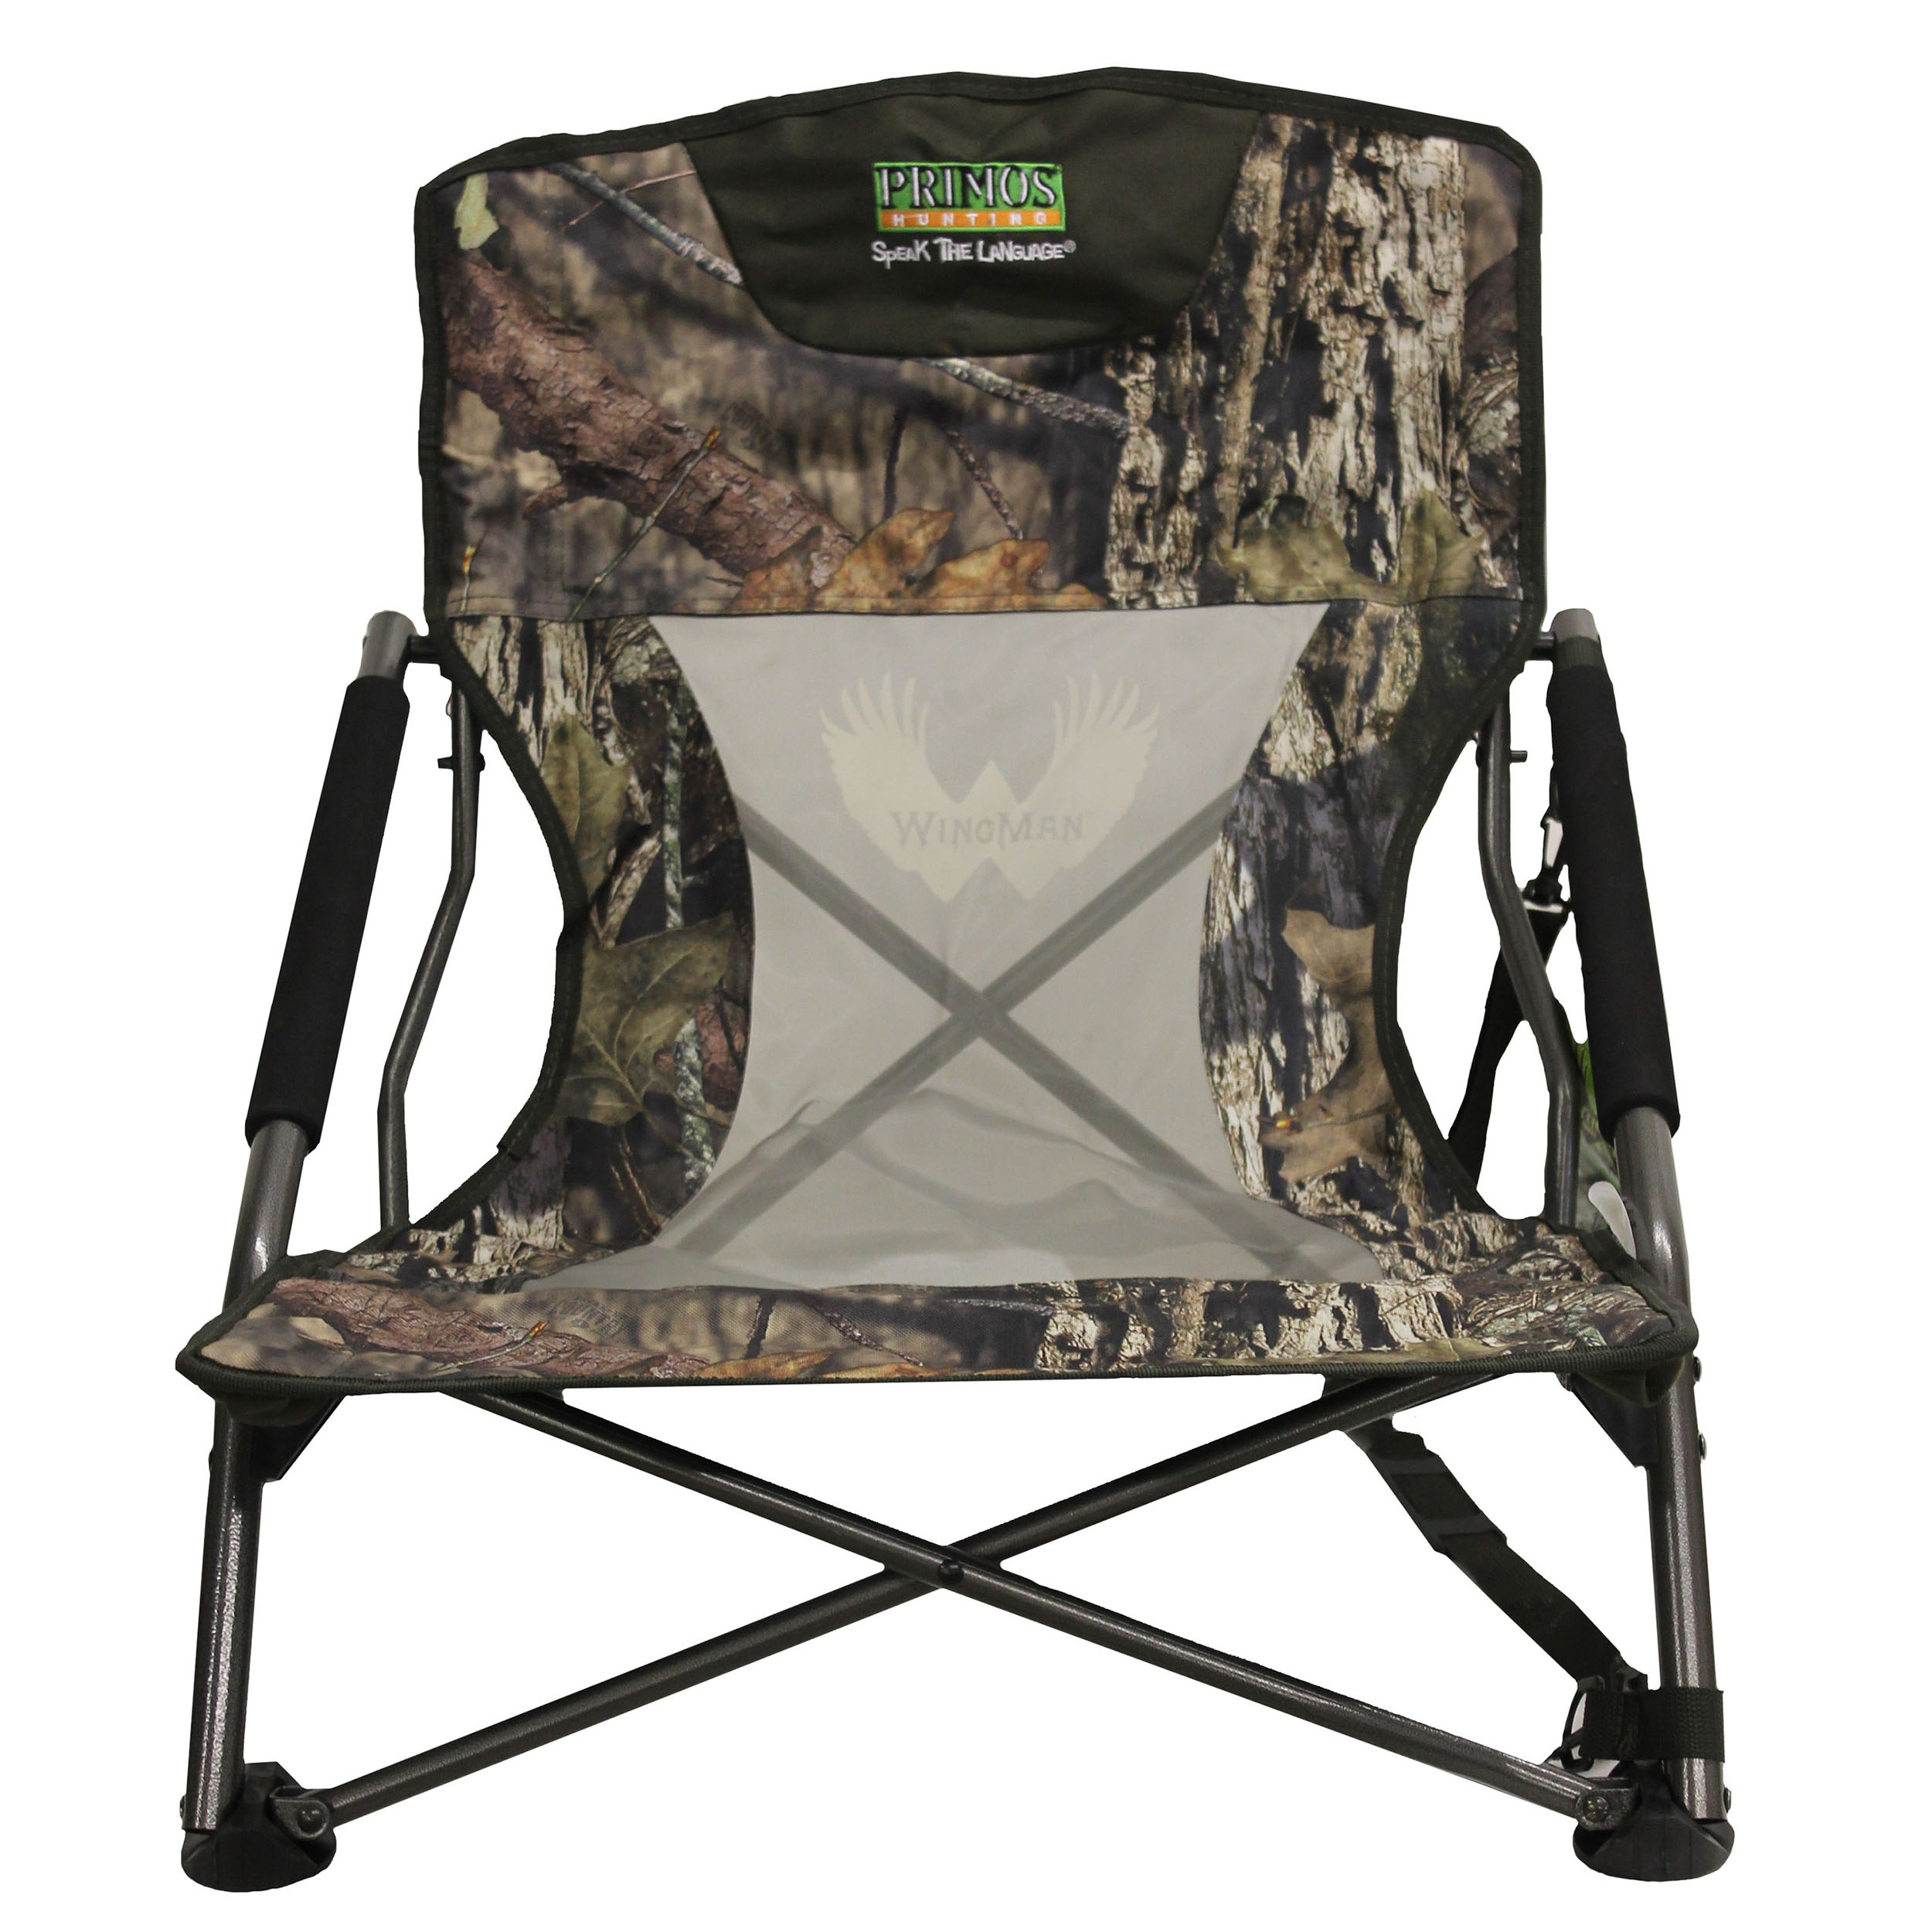 Primos Wing Man Turkey Chair Walmart